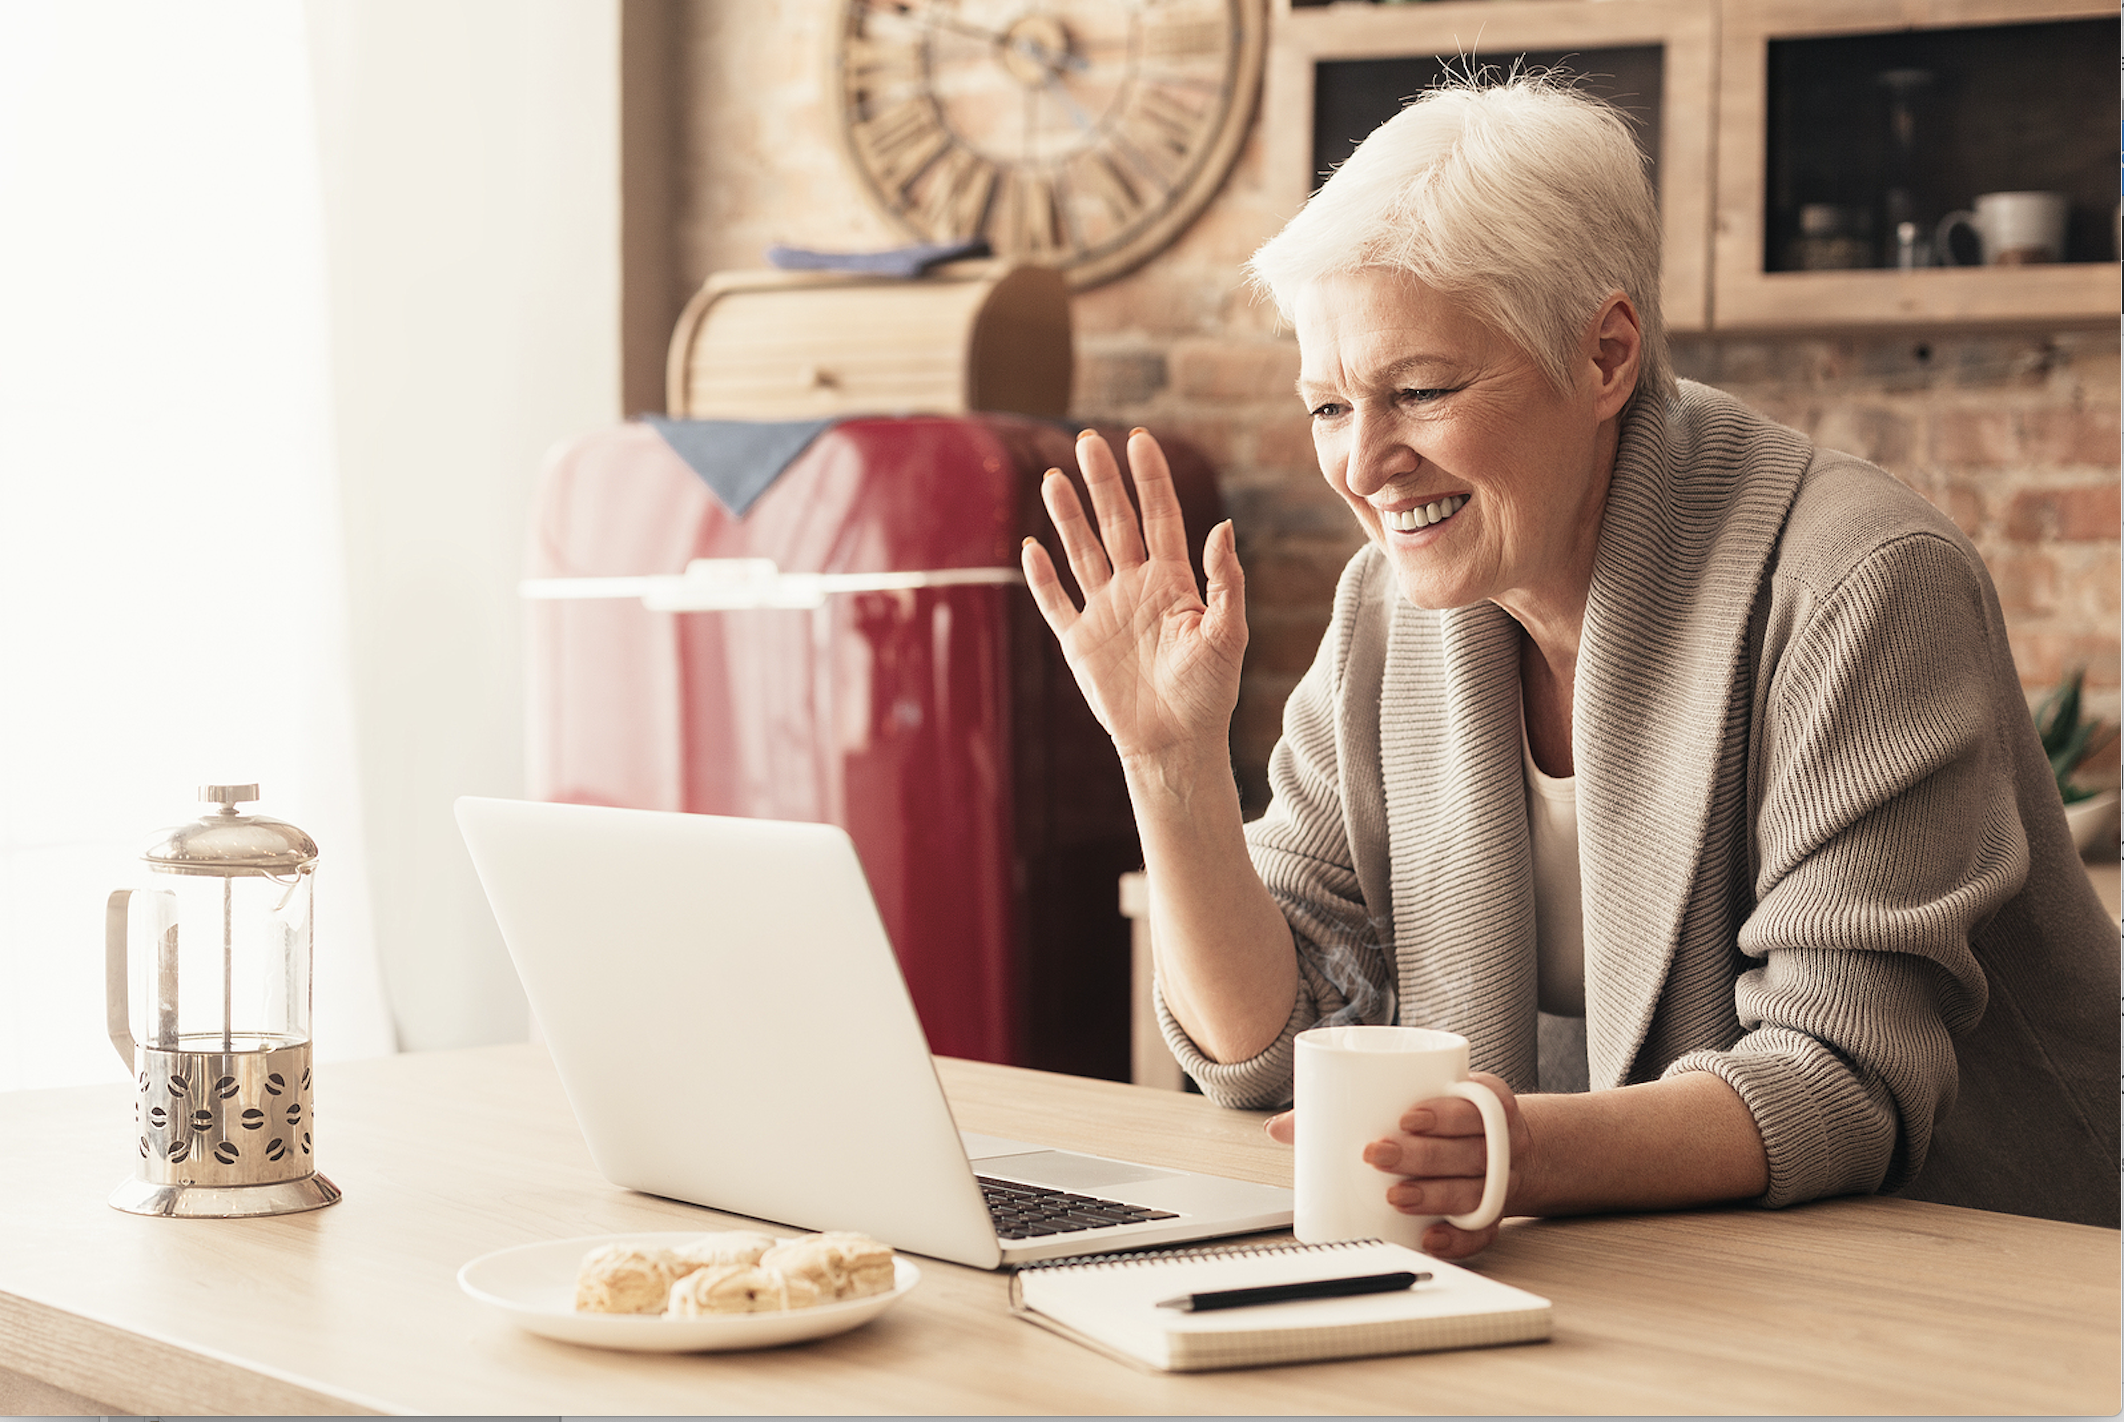 Happy senior woman visits virtually with loved ones.